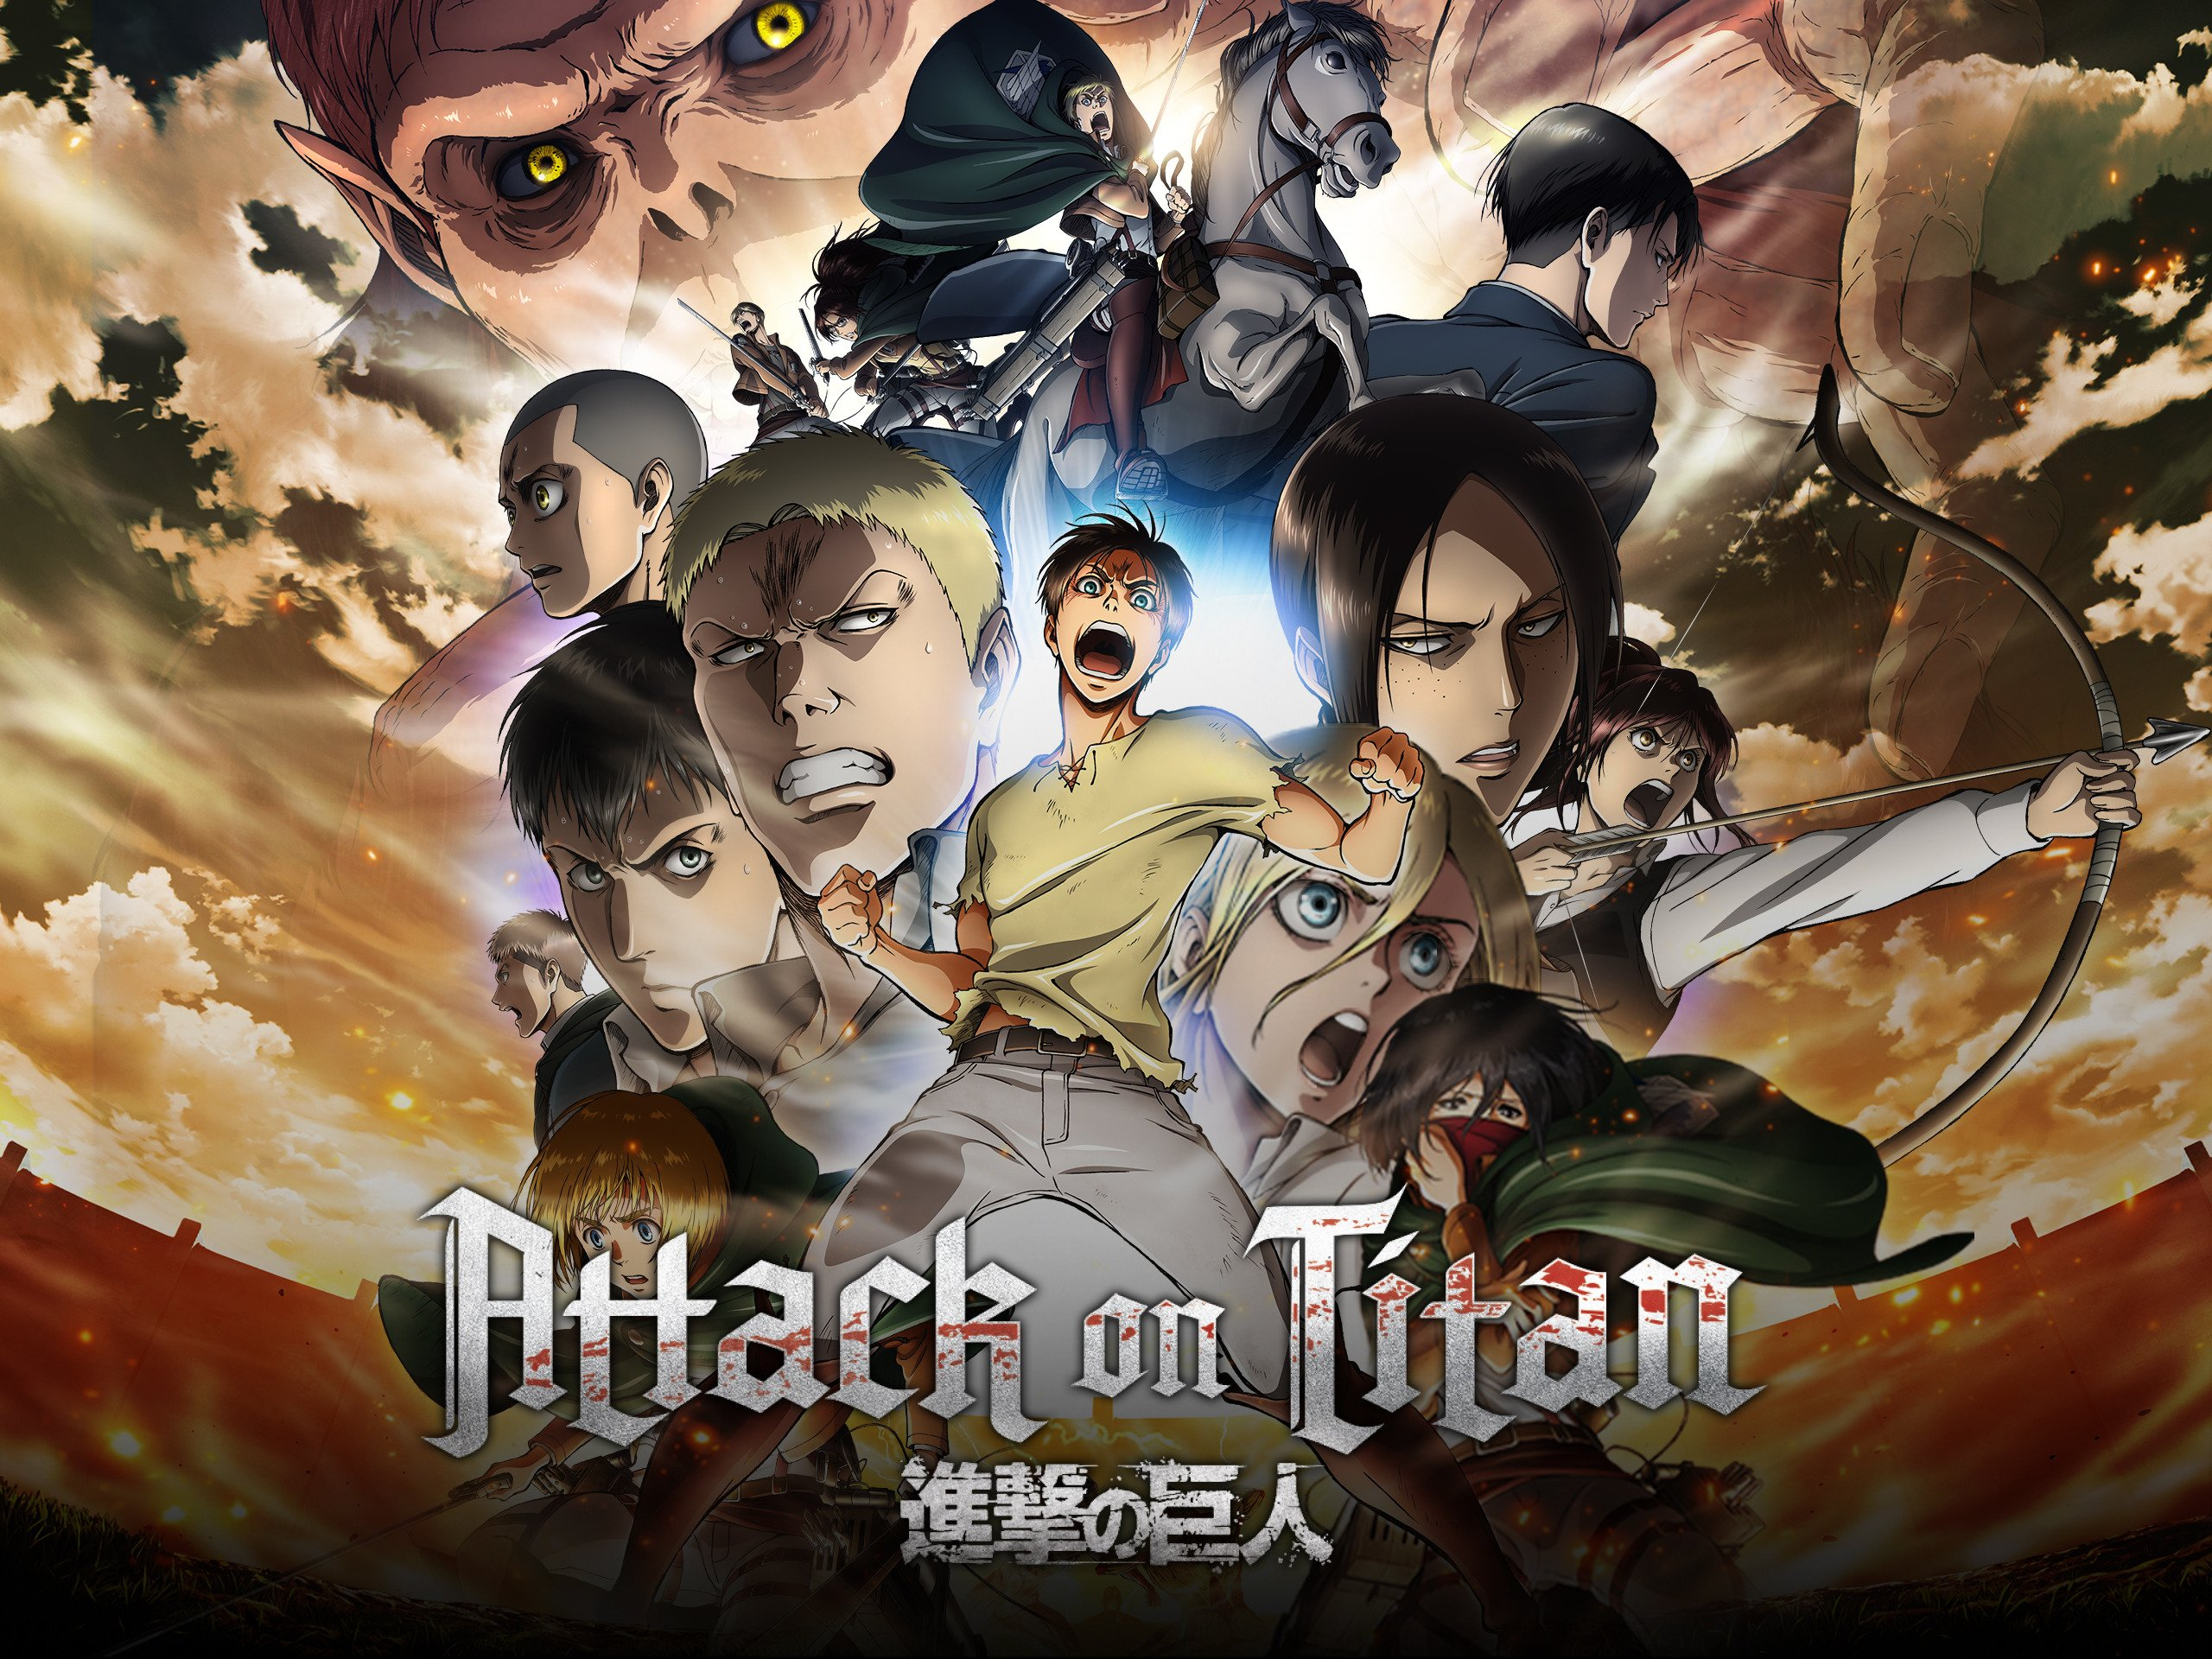 attack on titan season 2 free online watch